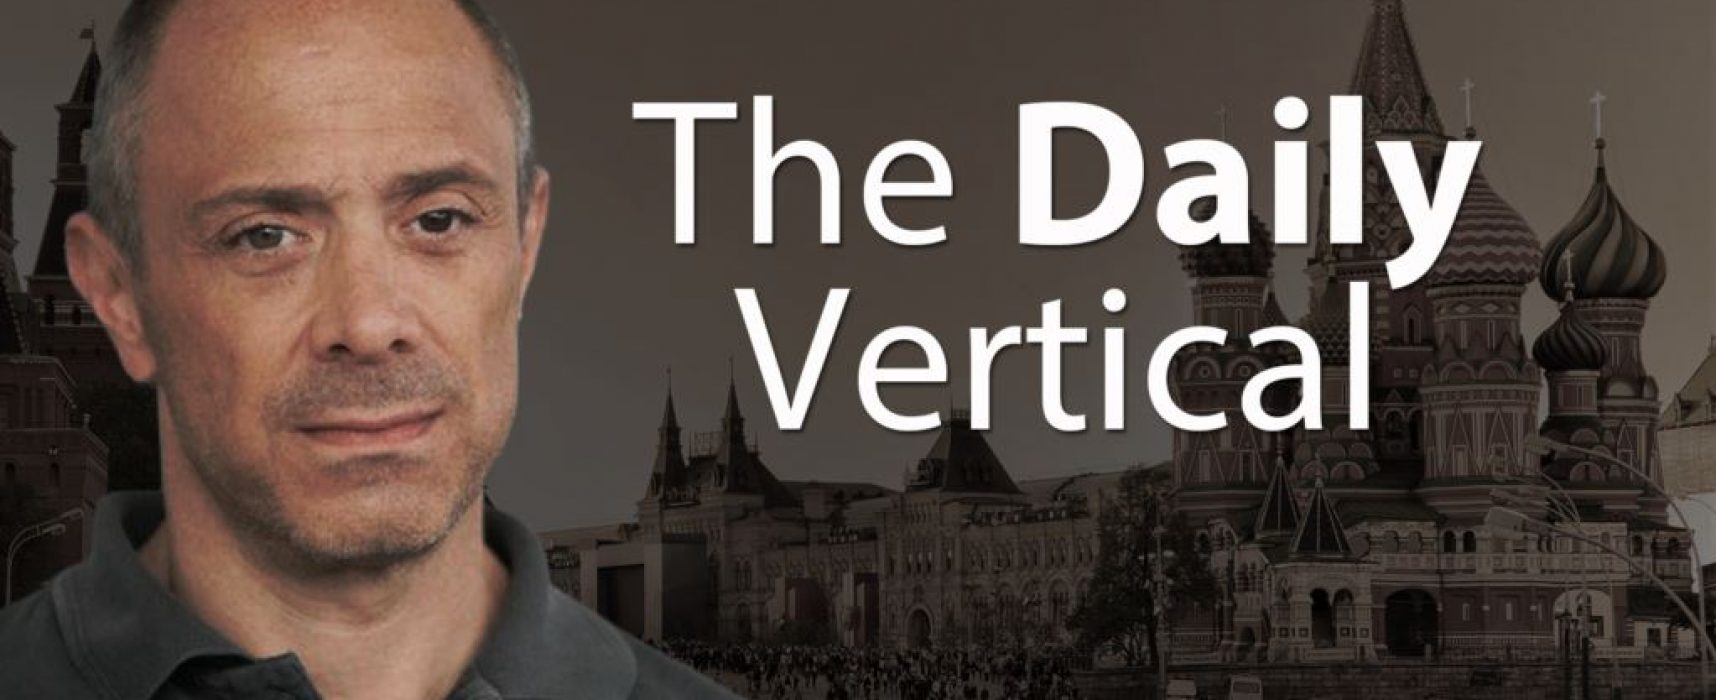 The Daily Vertical: Putin's Hybrid Repression (Transcript)